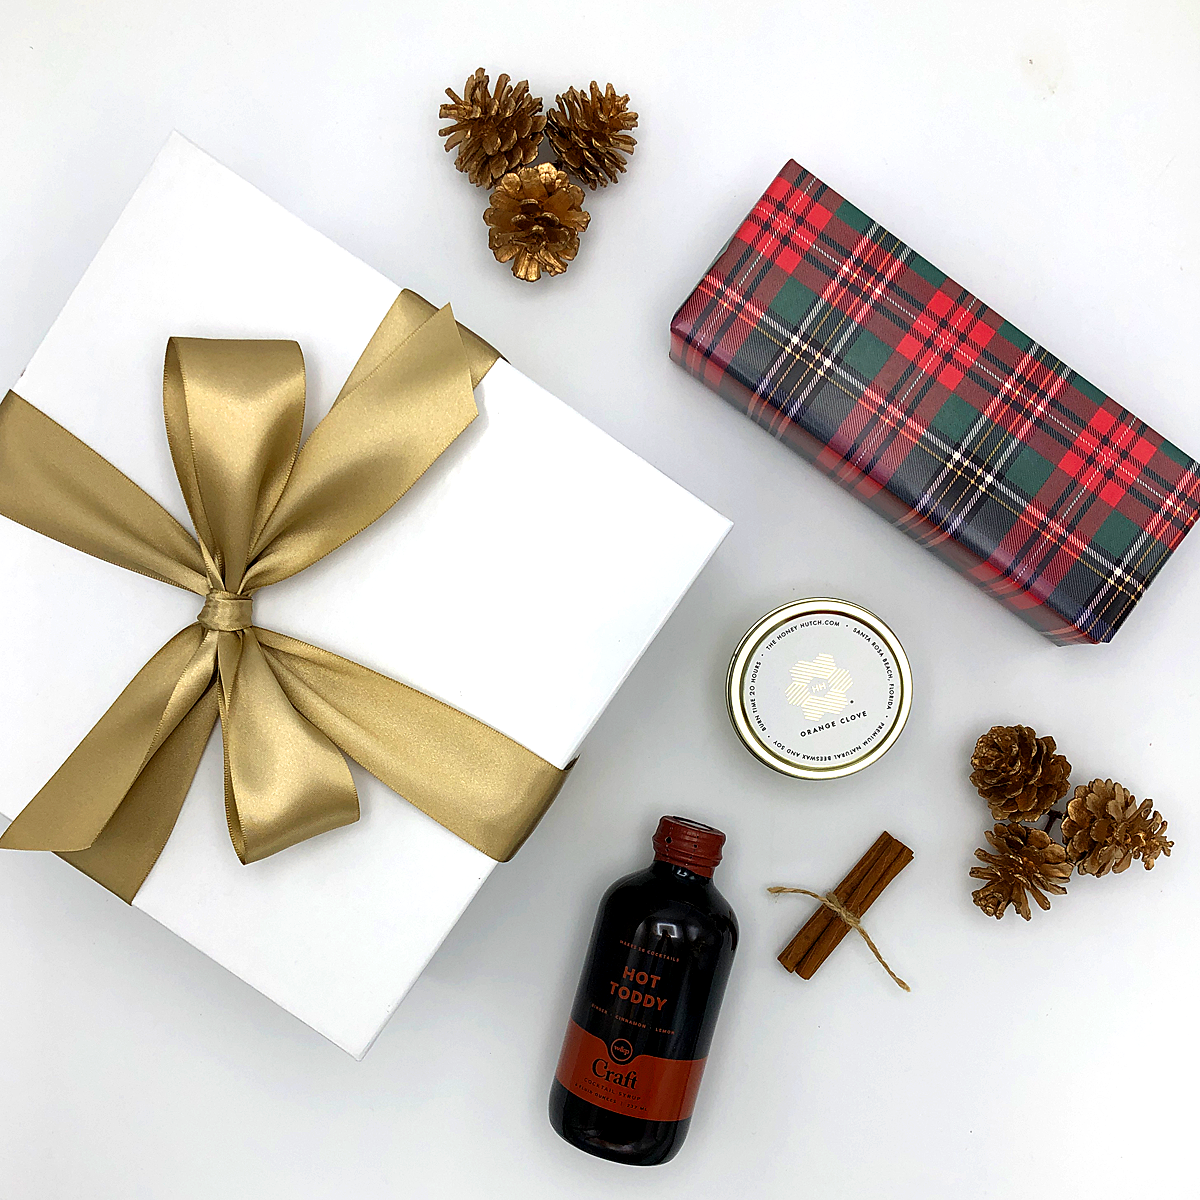 Hot Toddy Gift Box with orange clove candle, Maple Bourbon Pecans wrapped in tartan gift wrap, Hot Toddy Mixer and bundle of cinnamon sticks. Wrapped beautifully!